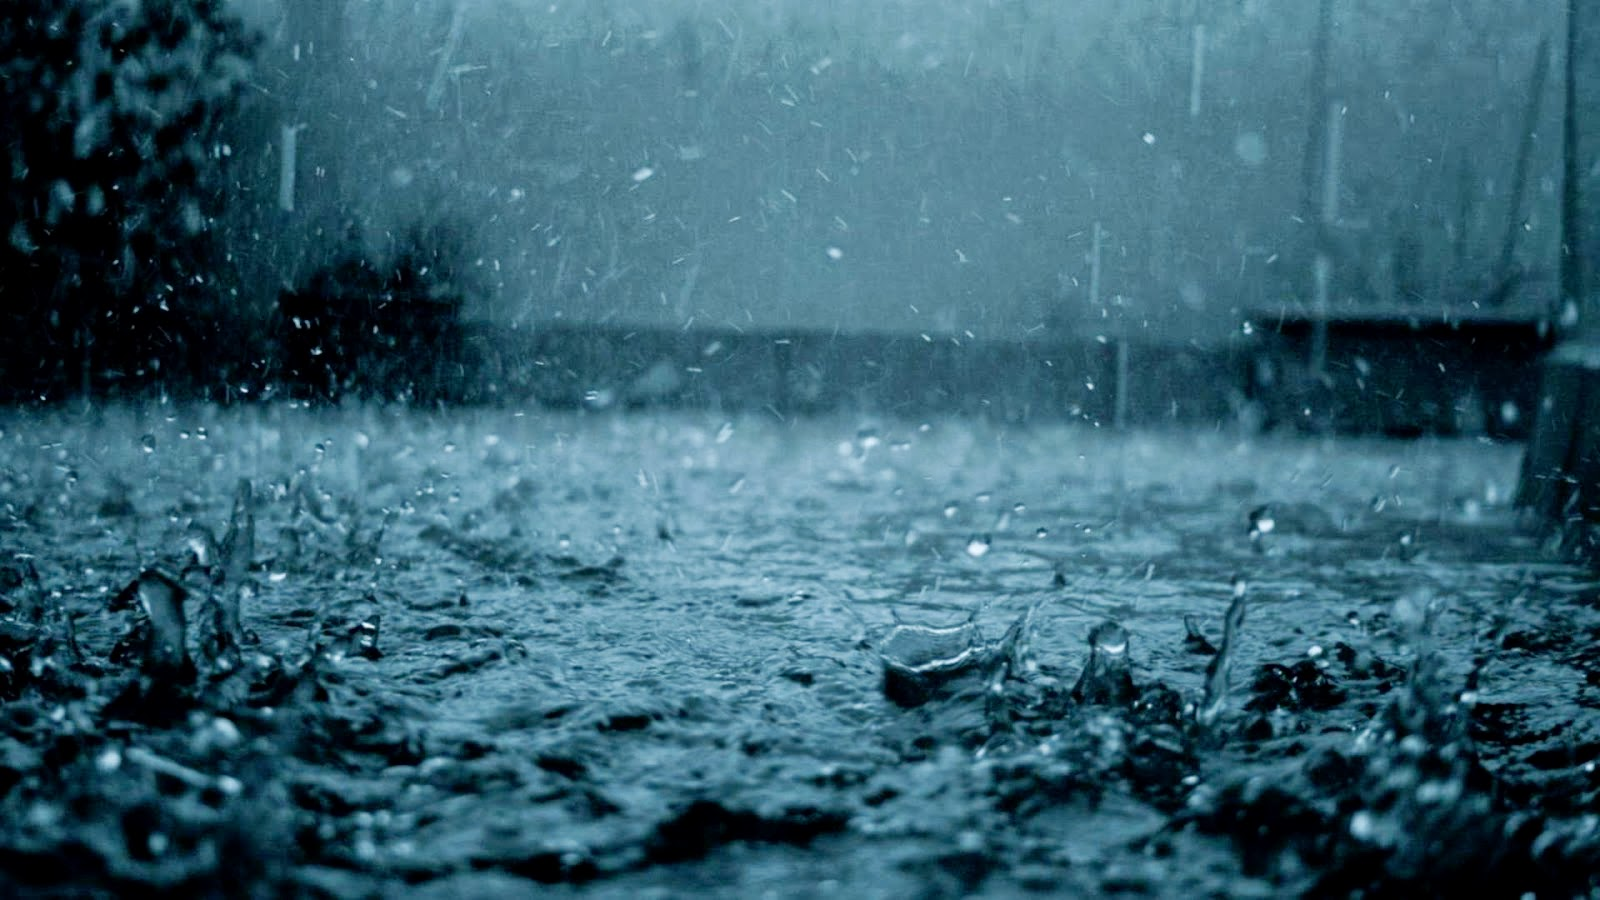 rainy night wallpapers background - photo #22